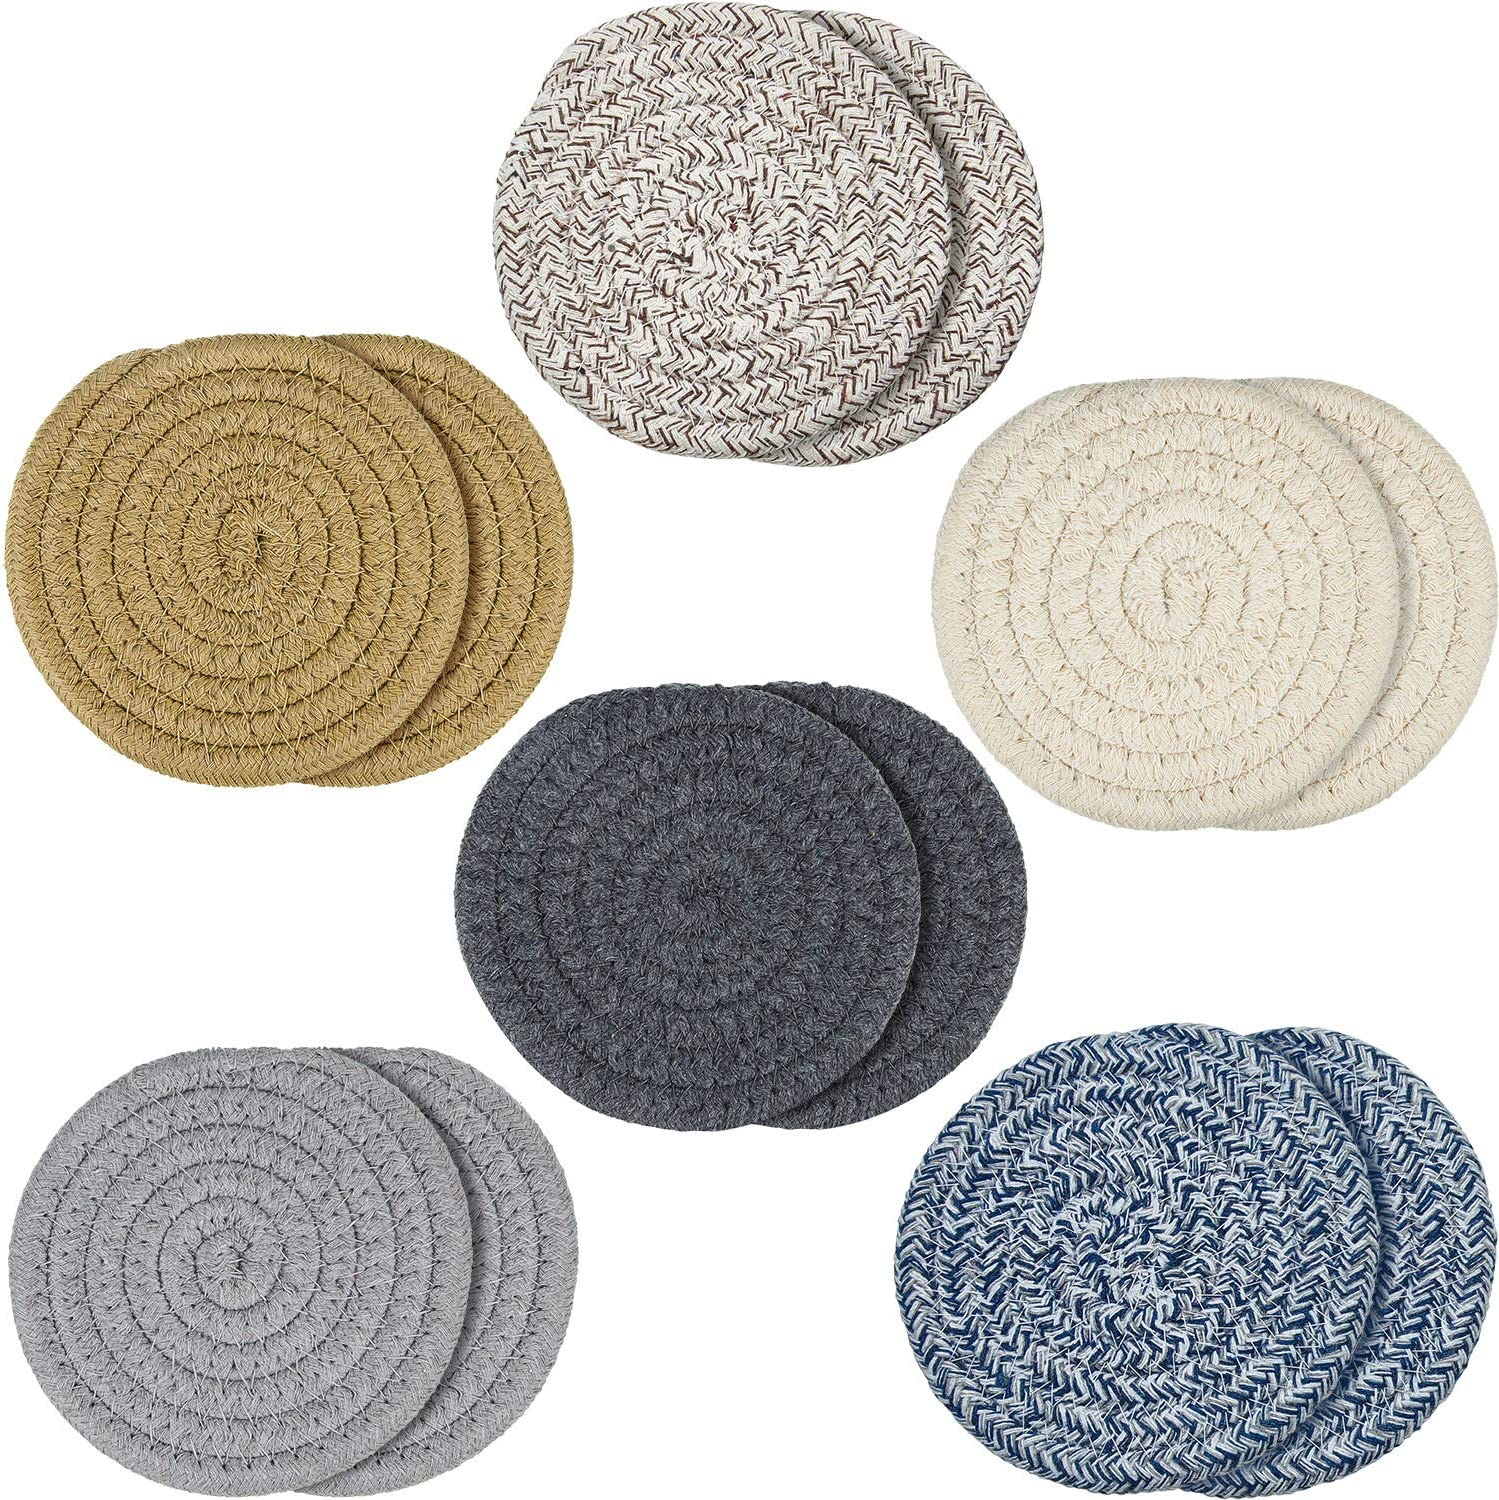 12 Pieces Braided Cup Coasters Cotton Round Woven Coasters Drink Absorbent Woven Coasters Hot Pads Mats for Drink Home Kitchen (Light Color)